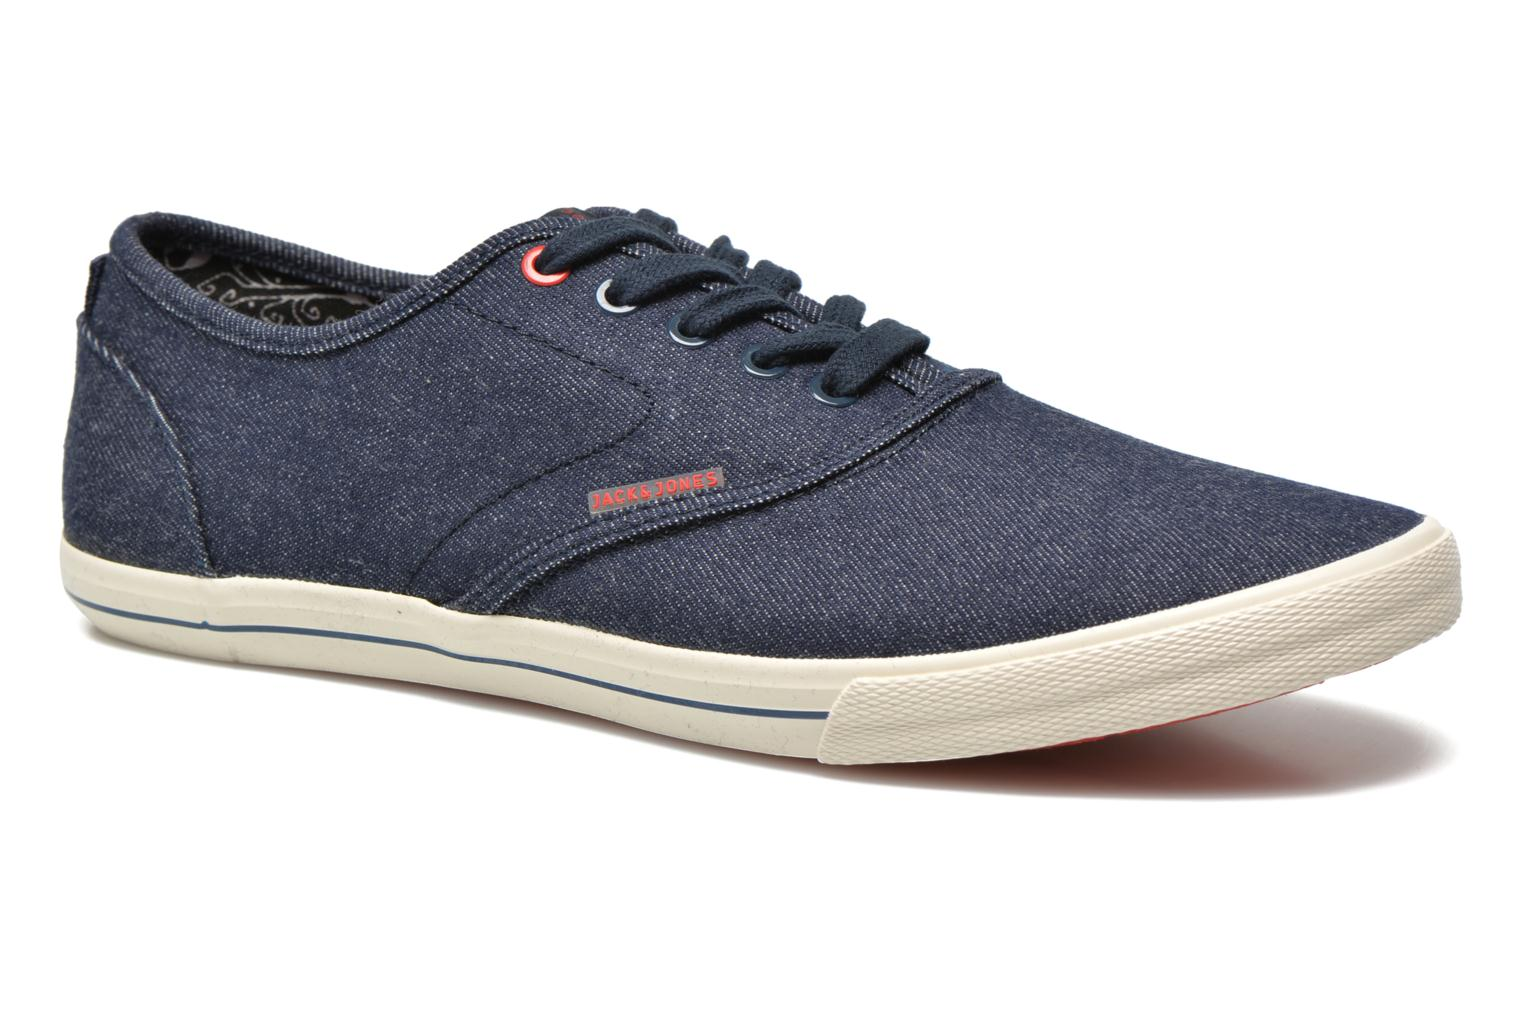 JJ Spider Light Blue Denim